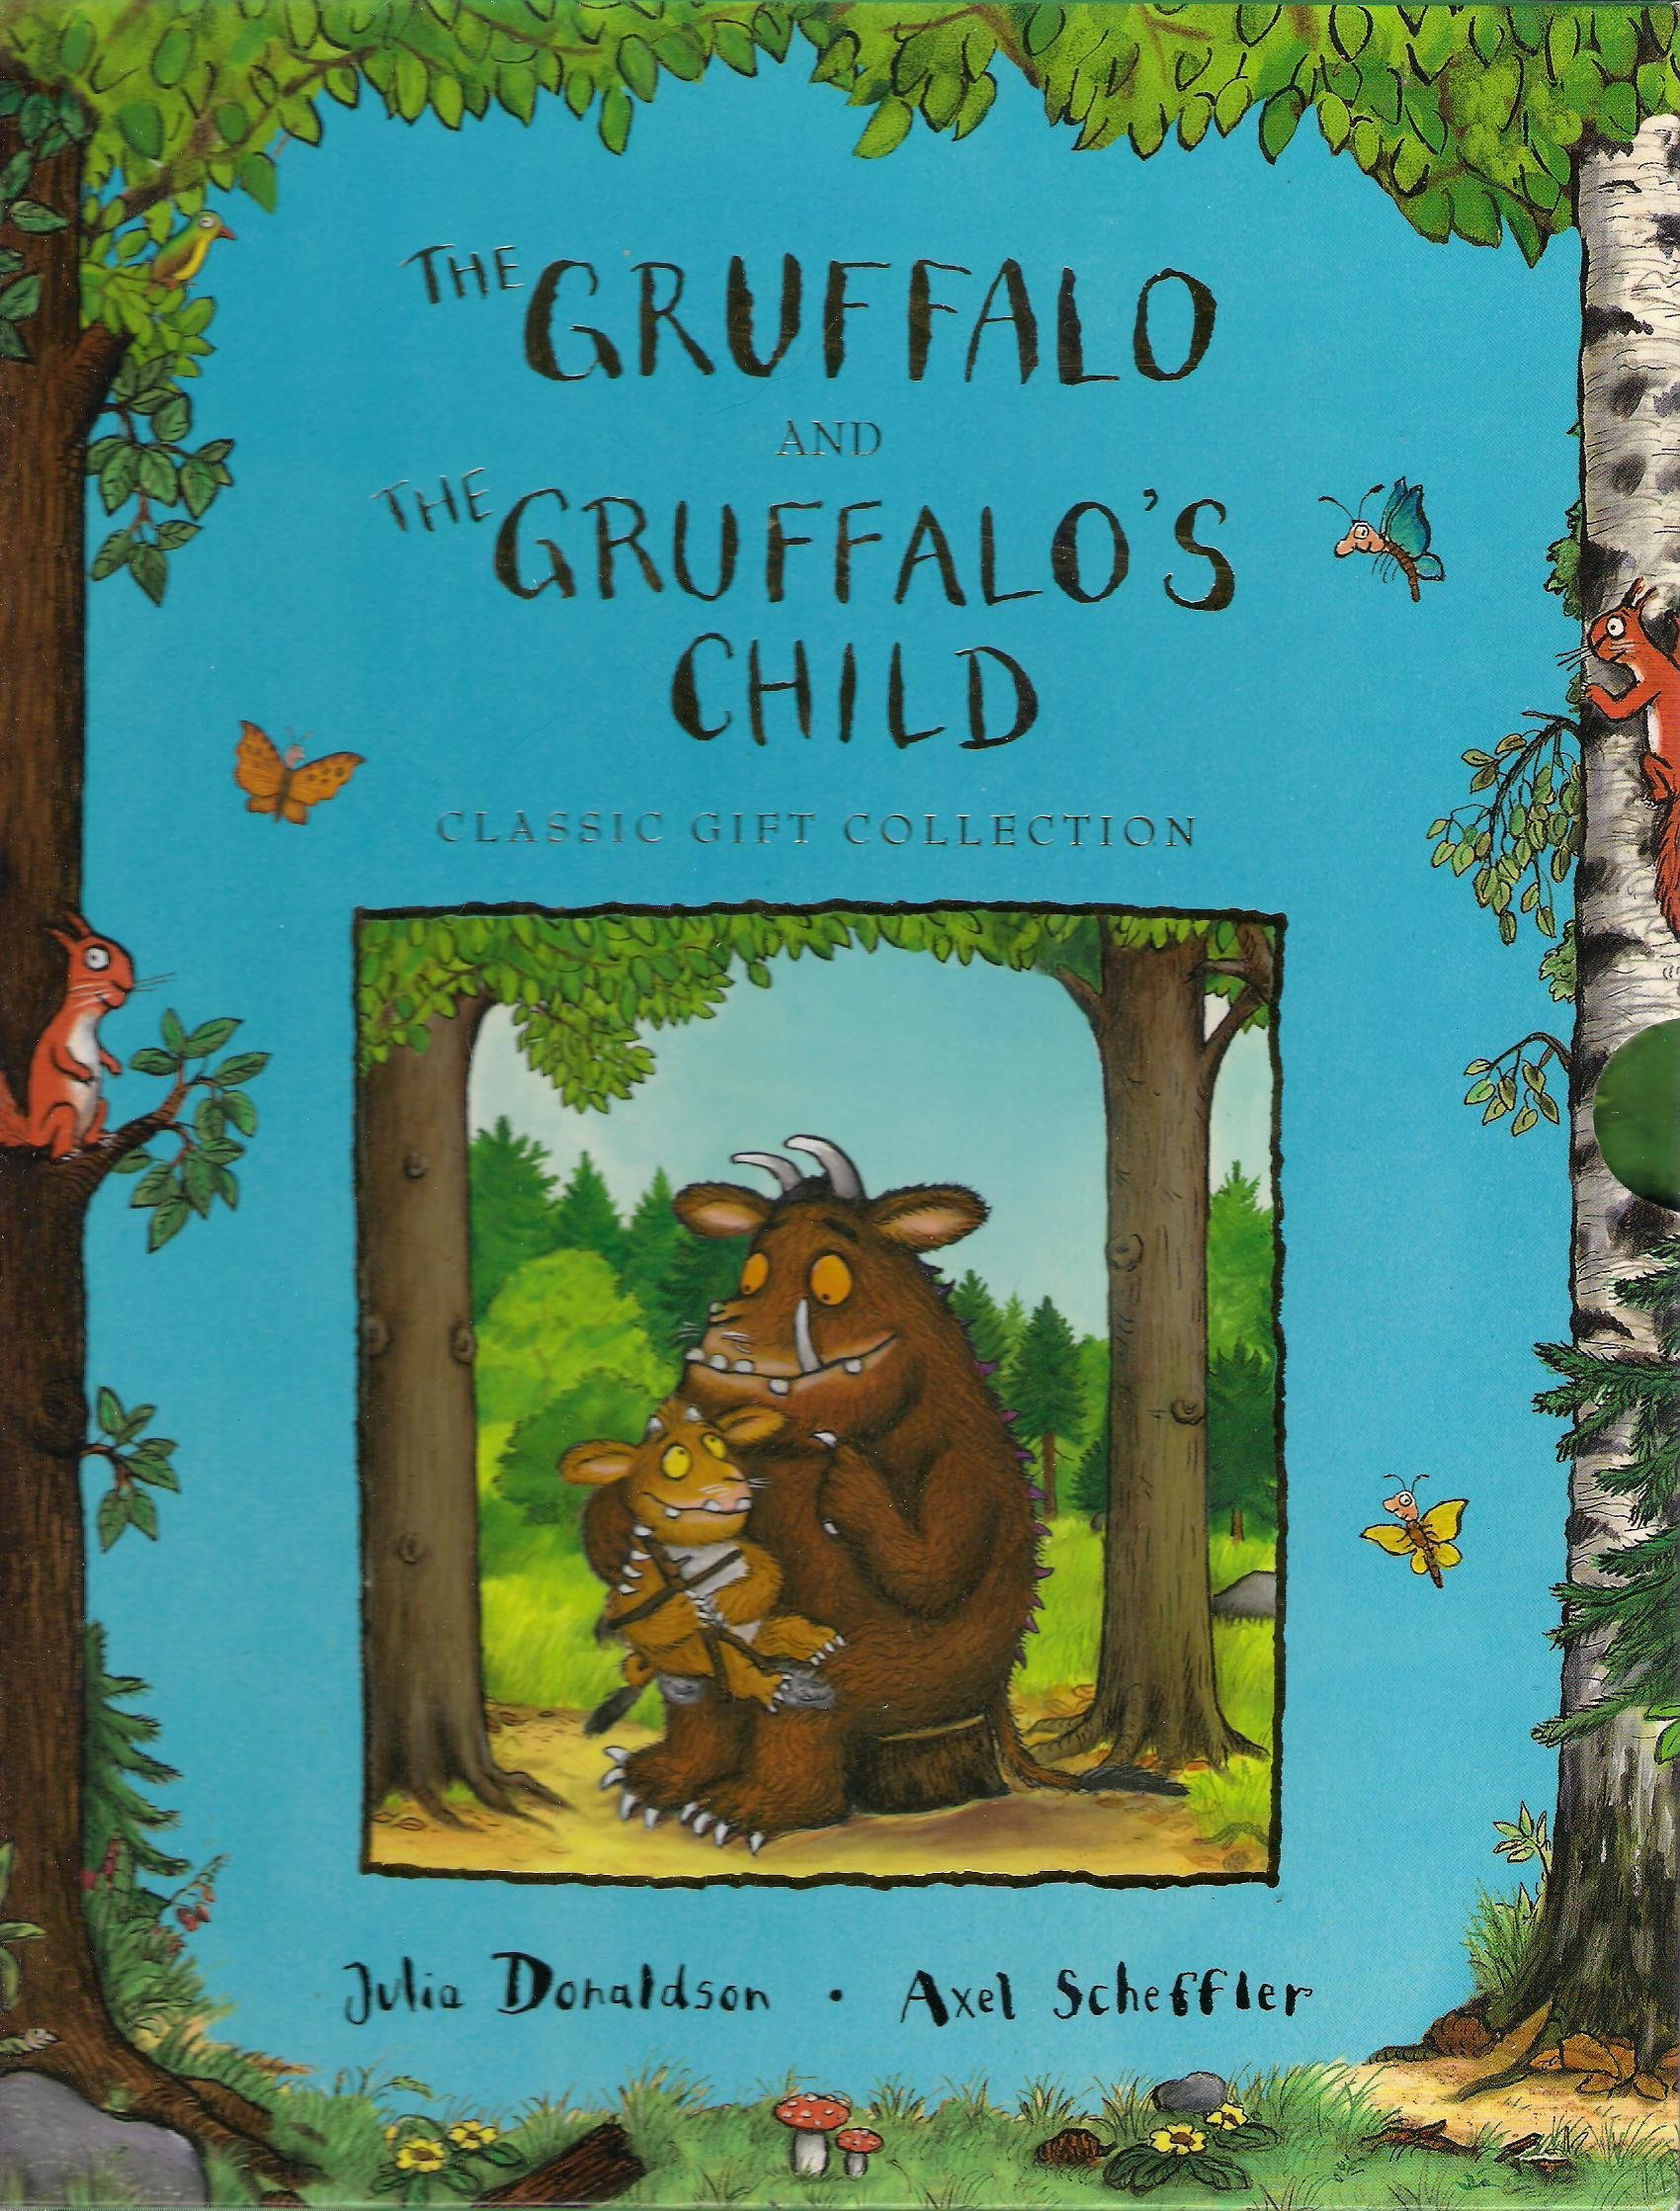 Gruffalo and the Gruffalos Child: Amazon.es: Donaldson, Julia, Scheffler, Axel: Libros en idiomas extranjeros